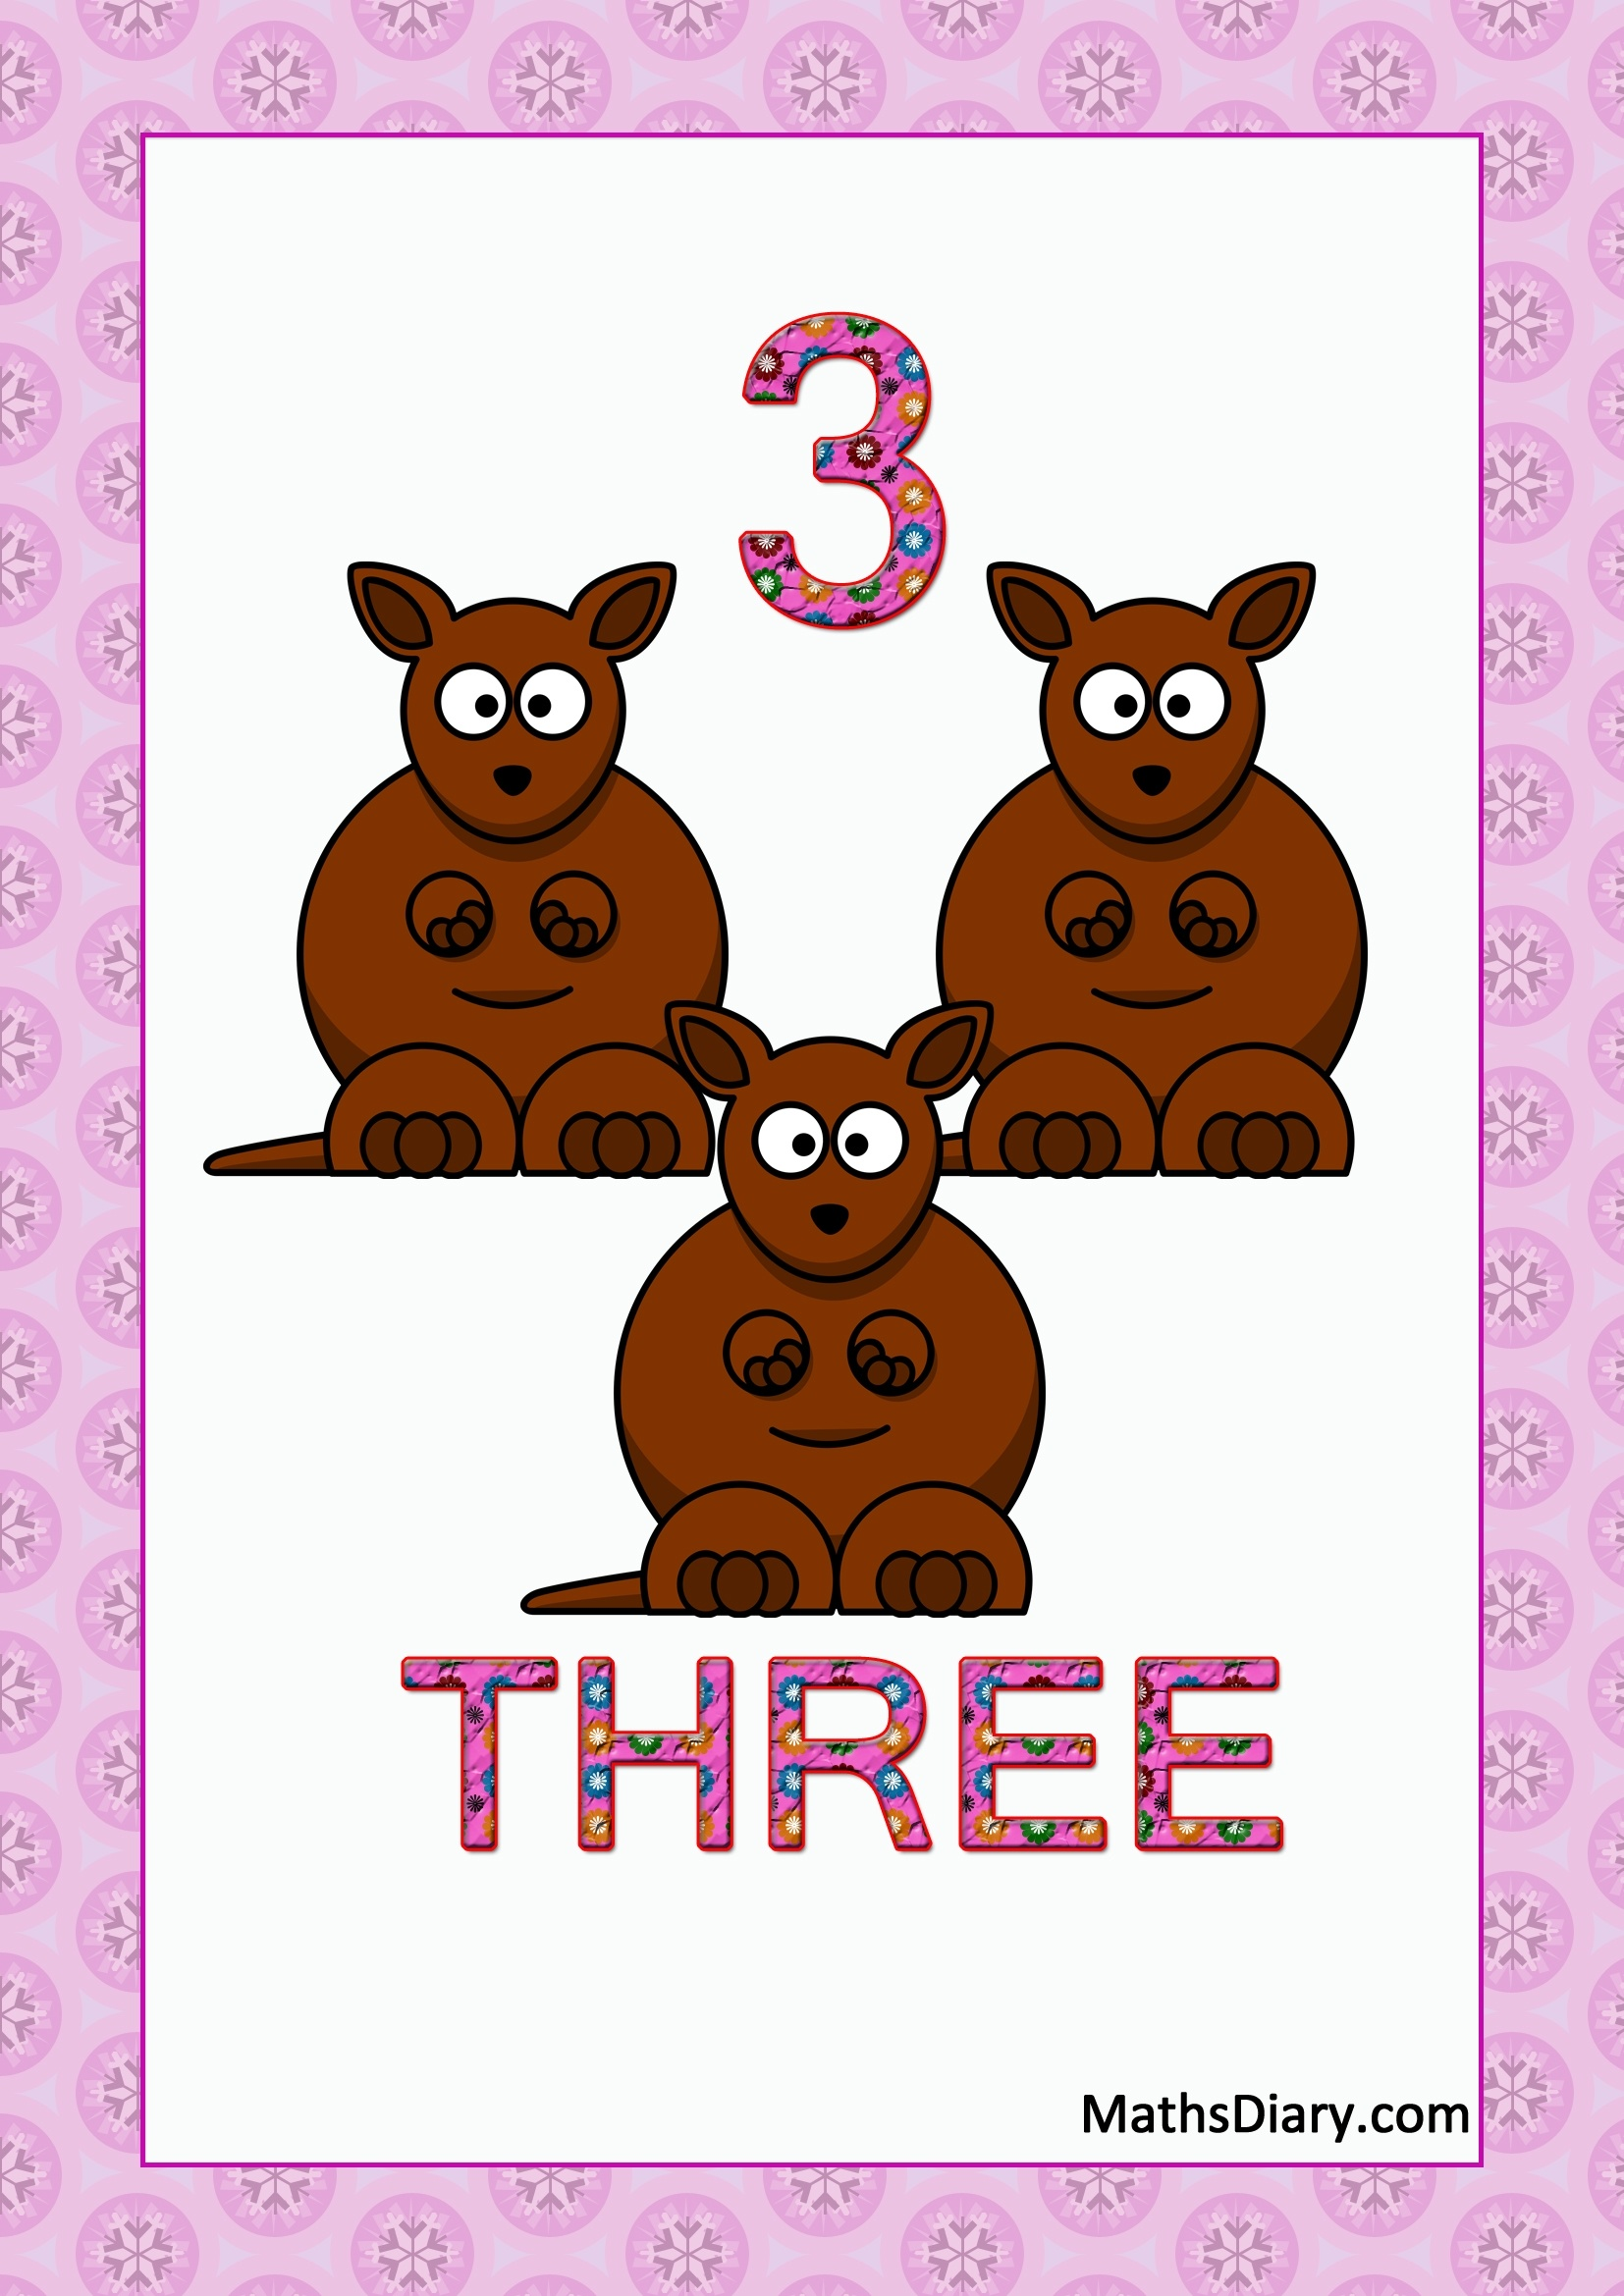 Learning Counting And Recognition Of Number 3 Worksheets Level 1 Help Sheets Part 2